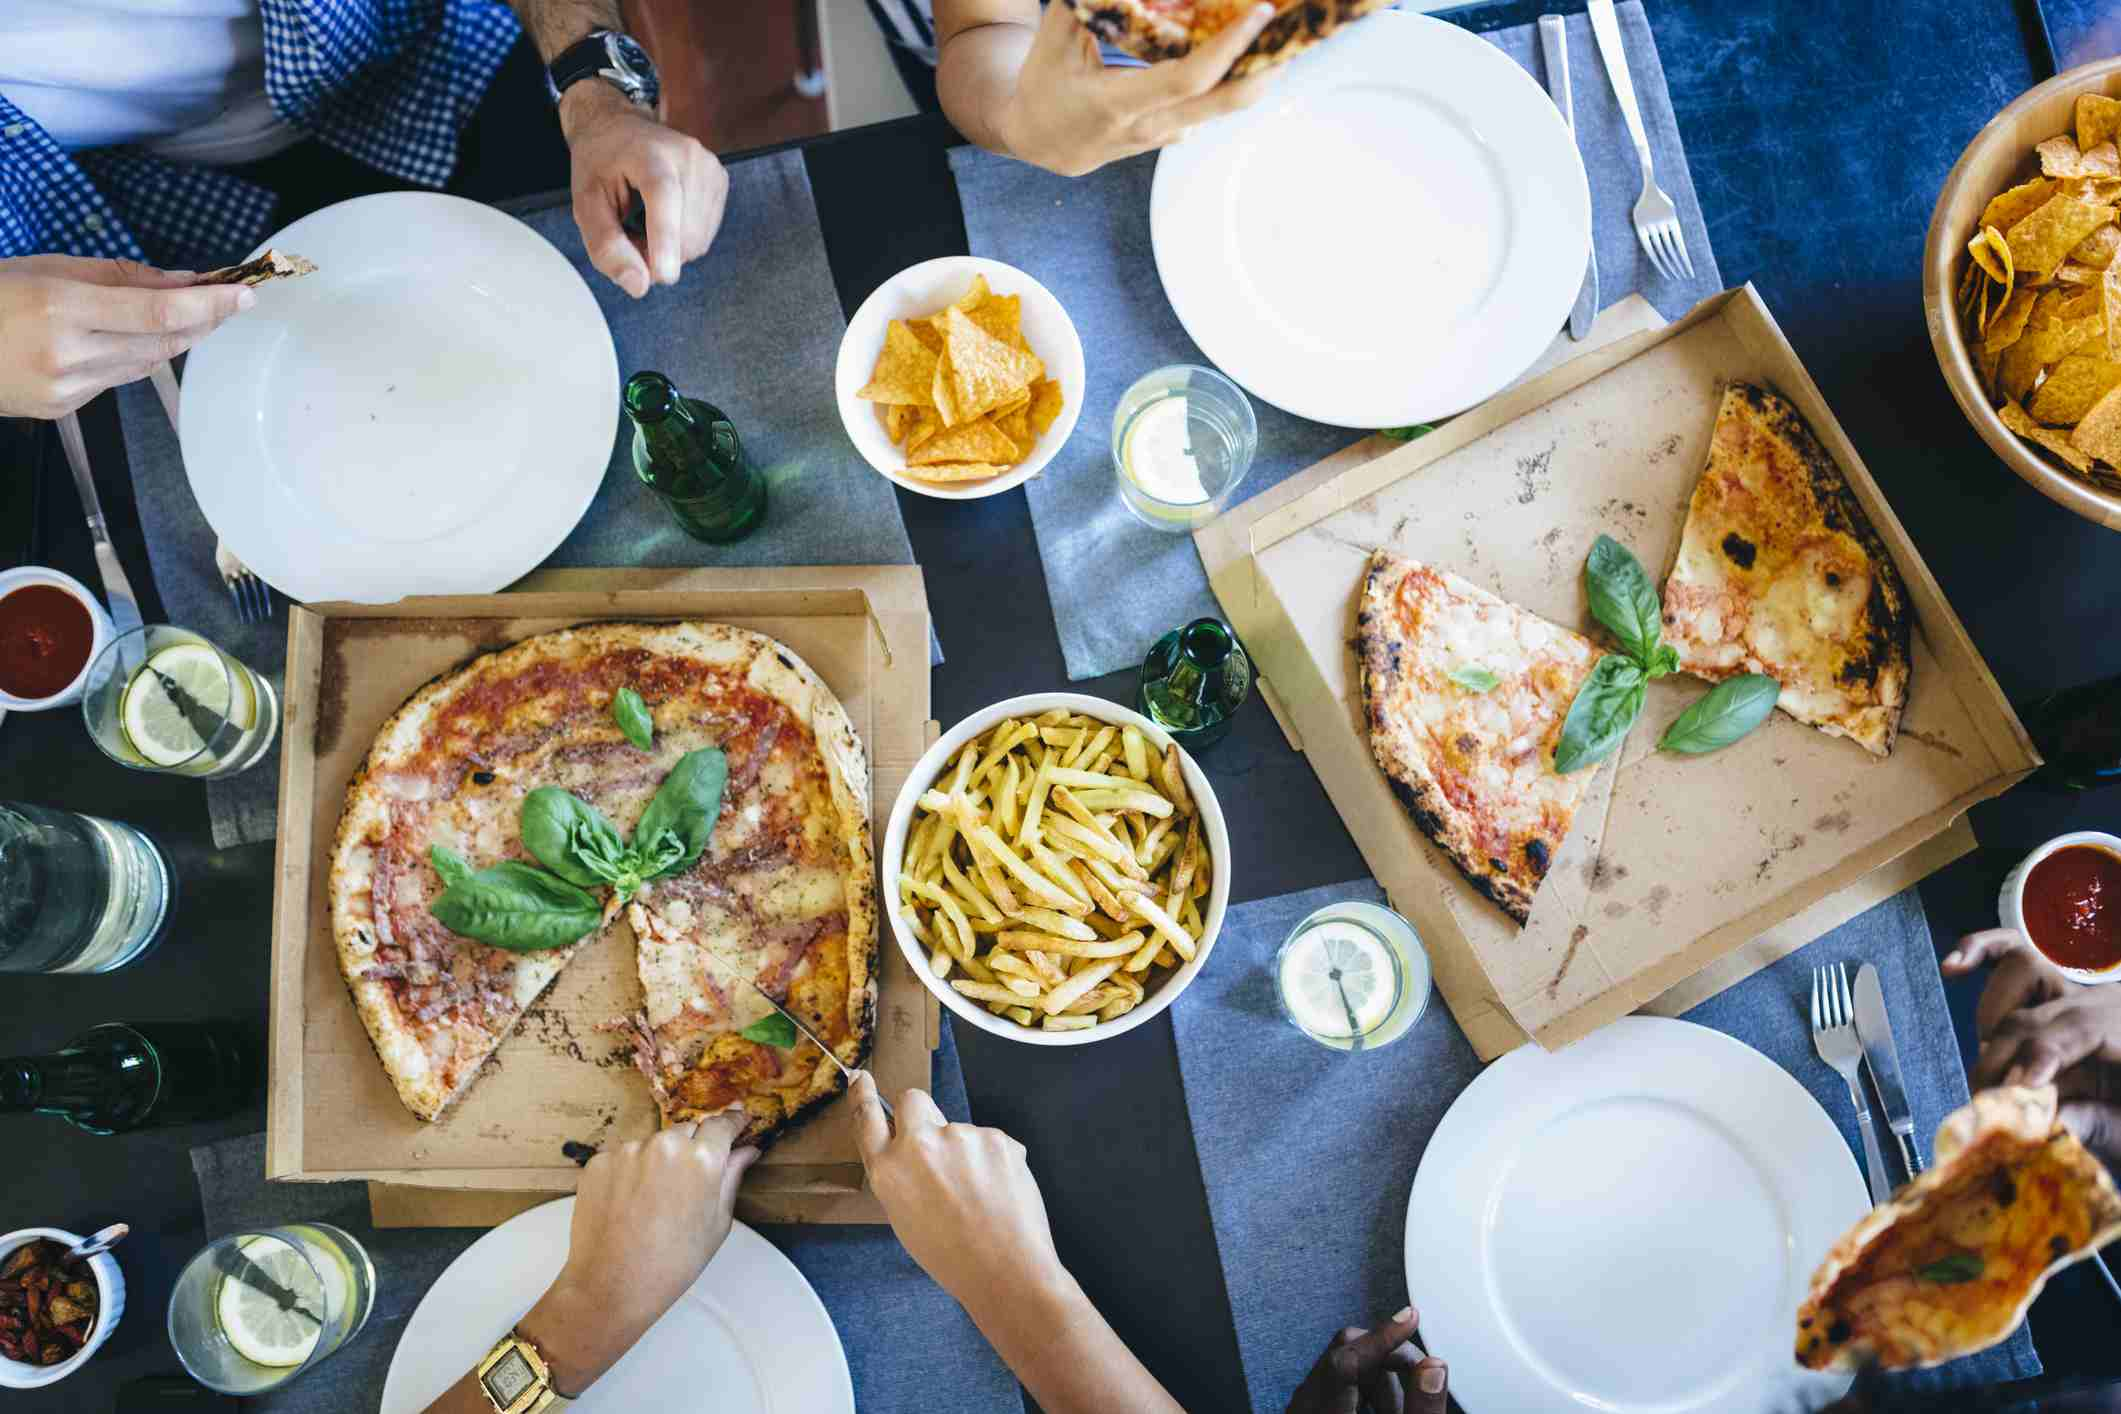 Friends sharing pizza and french fries.